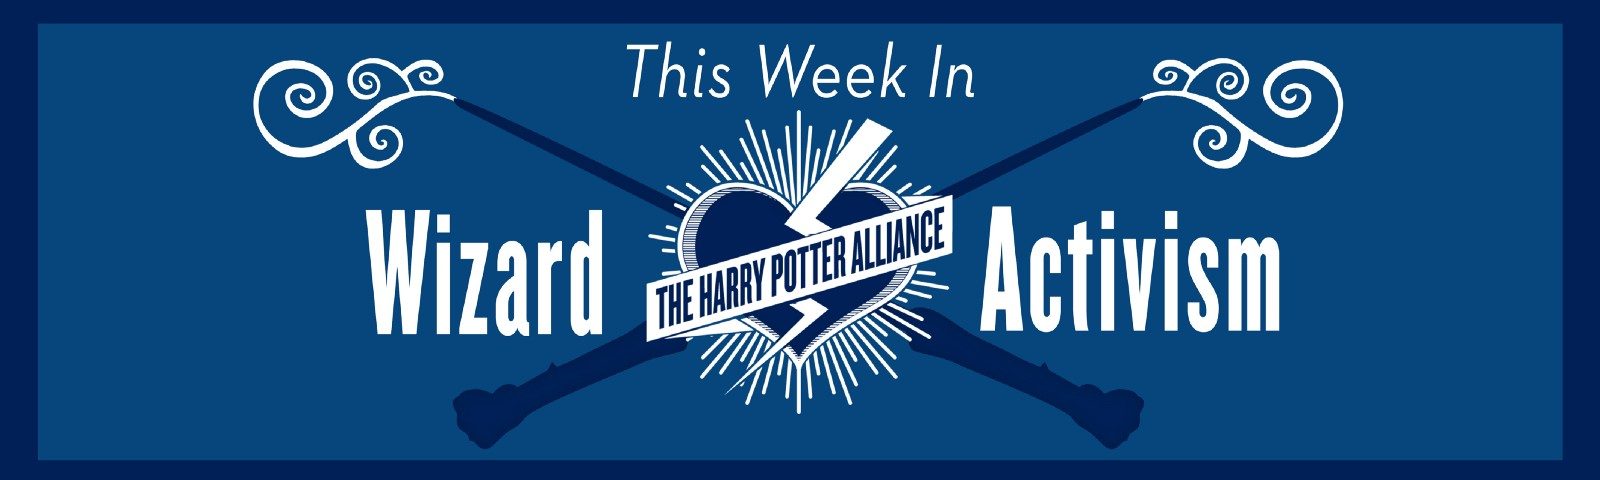 "Graphic of our This Week in Wizard Activism logo! It features the words ""This Week in Wizard Activism"" and our logo on a blue"